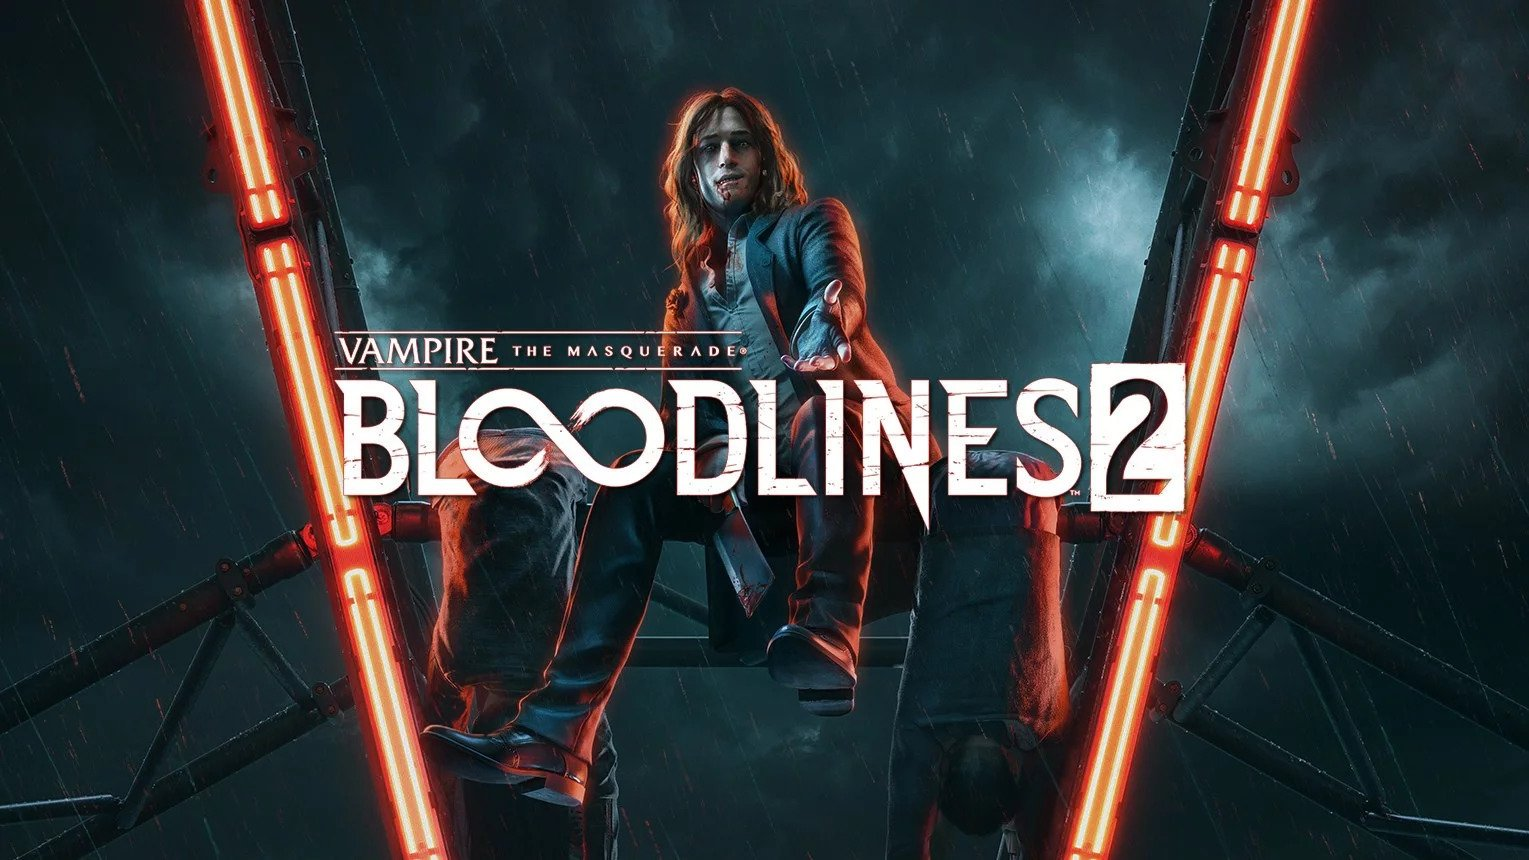 Vampire: The Masquerade – Bloodlines 2 announced for PC and consoles